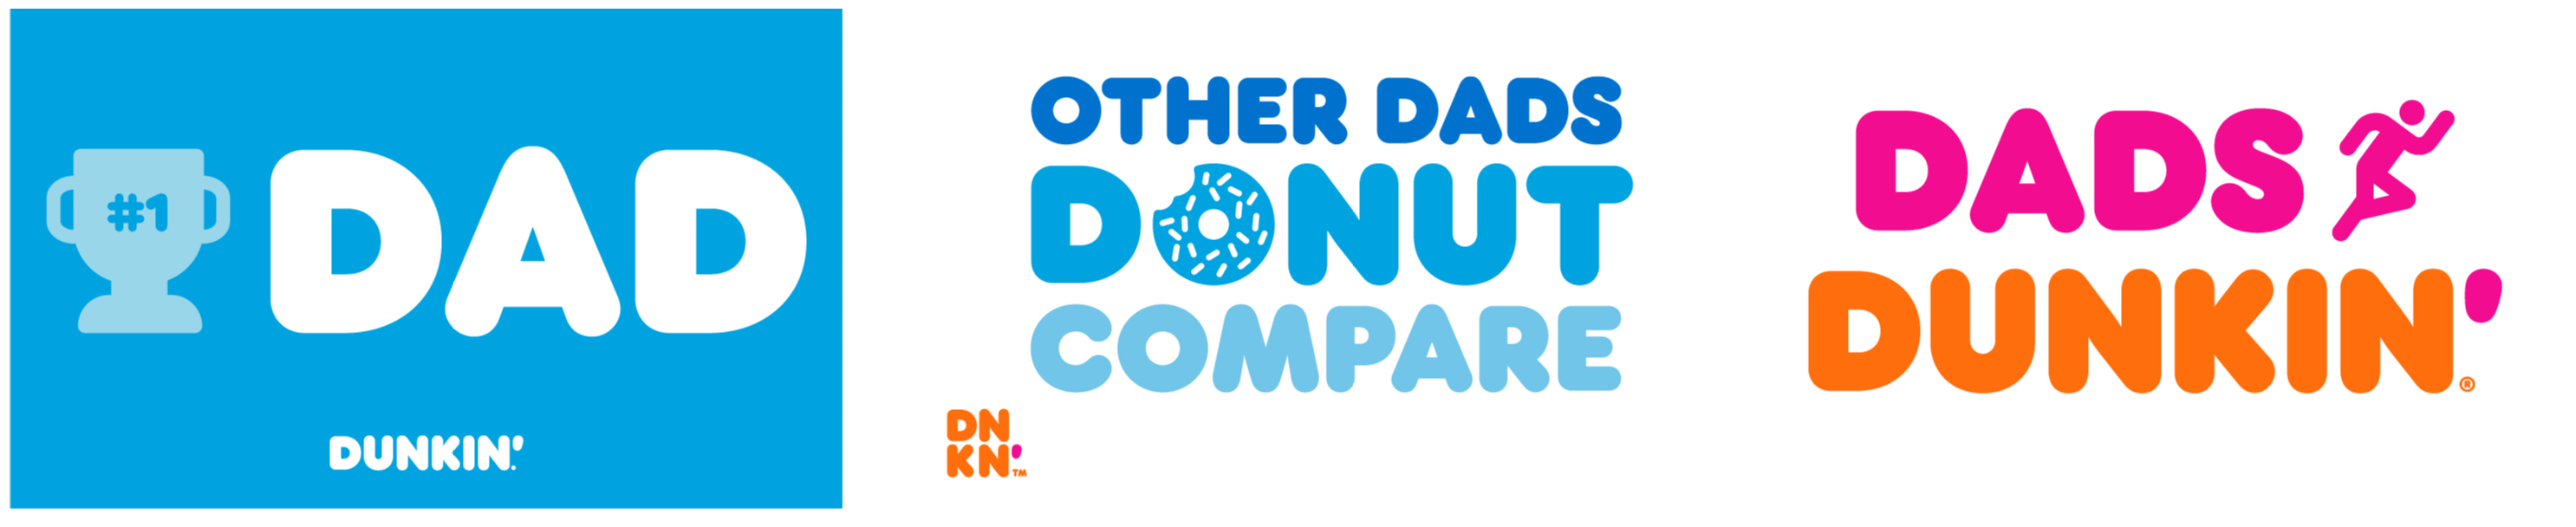 Father's Day Dunkin'